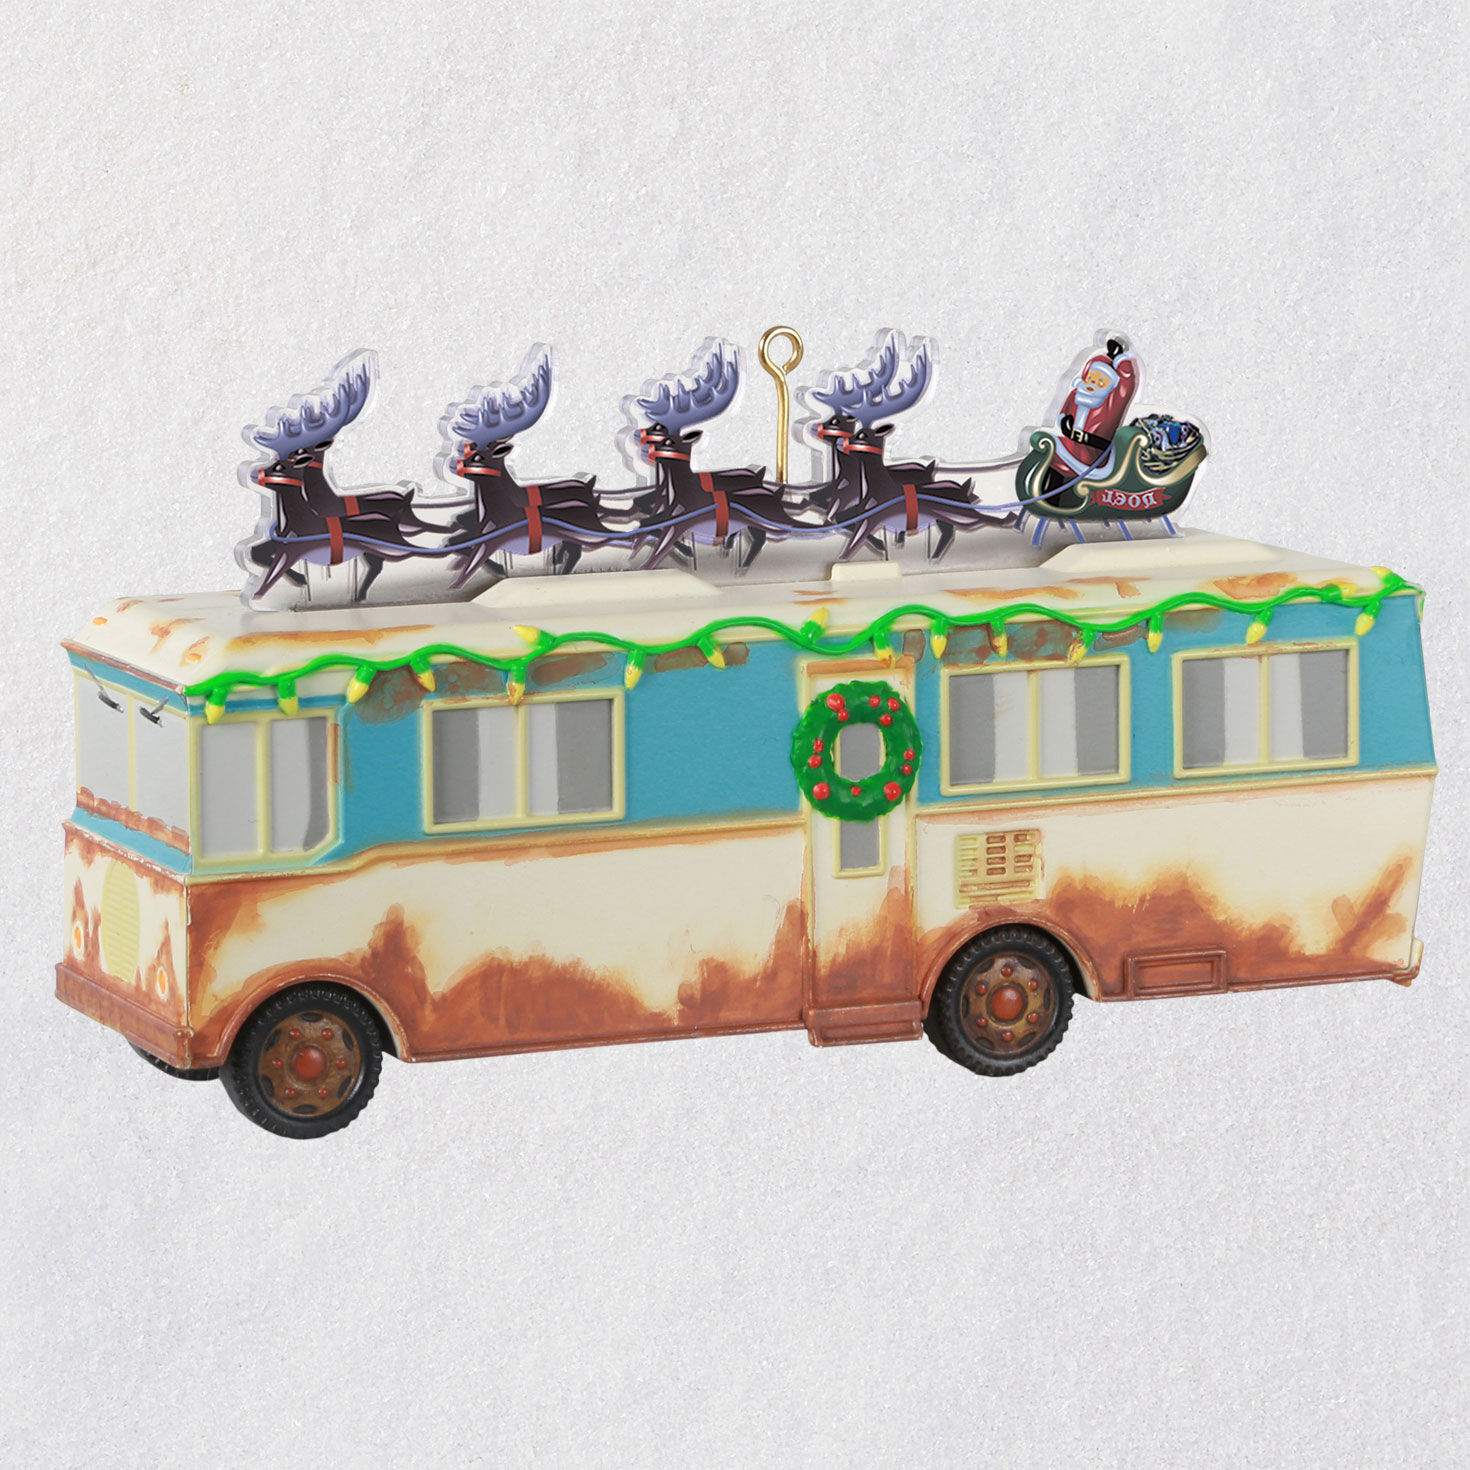 2020 Christmas Vacation National Lampoon's Christmas Vacation™ That's an RV Ornament